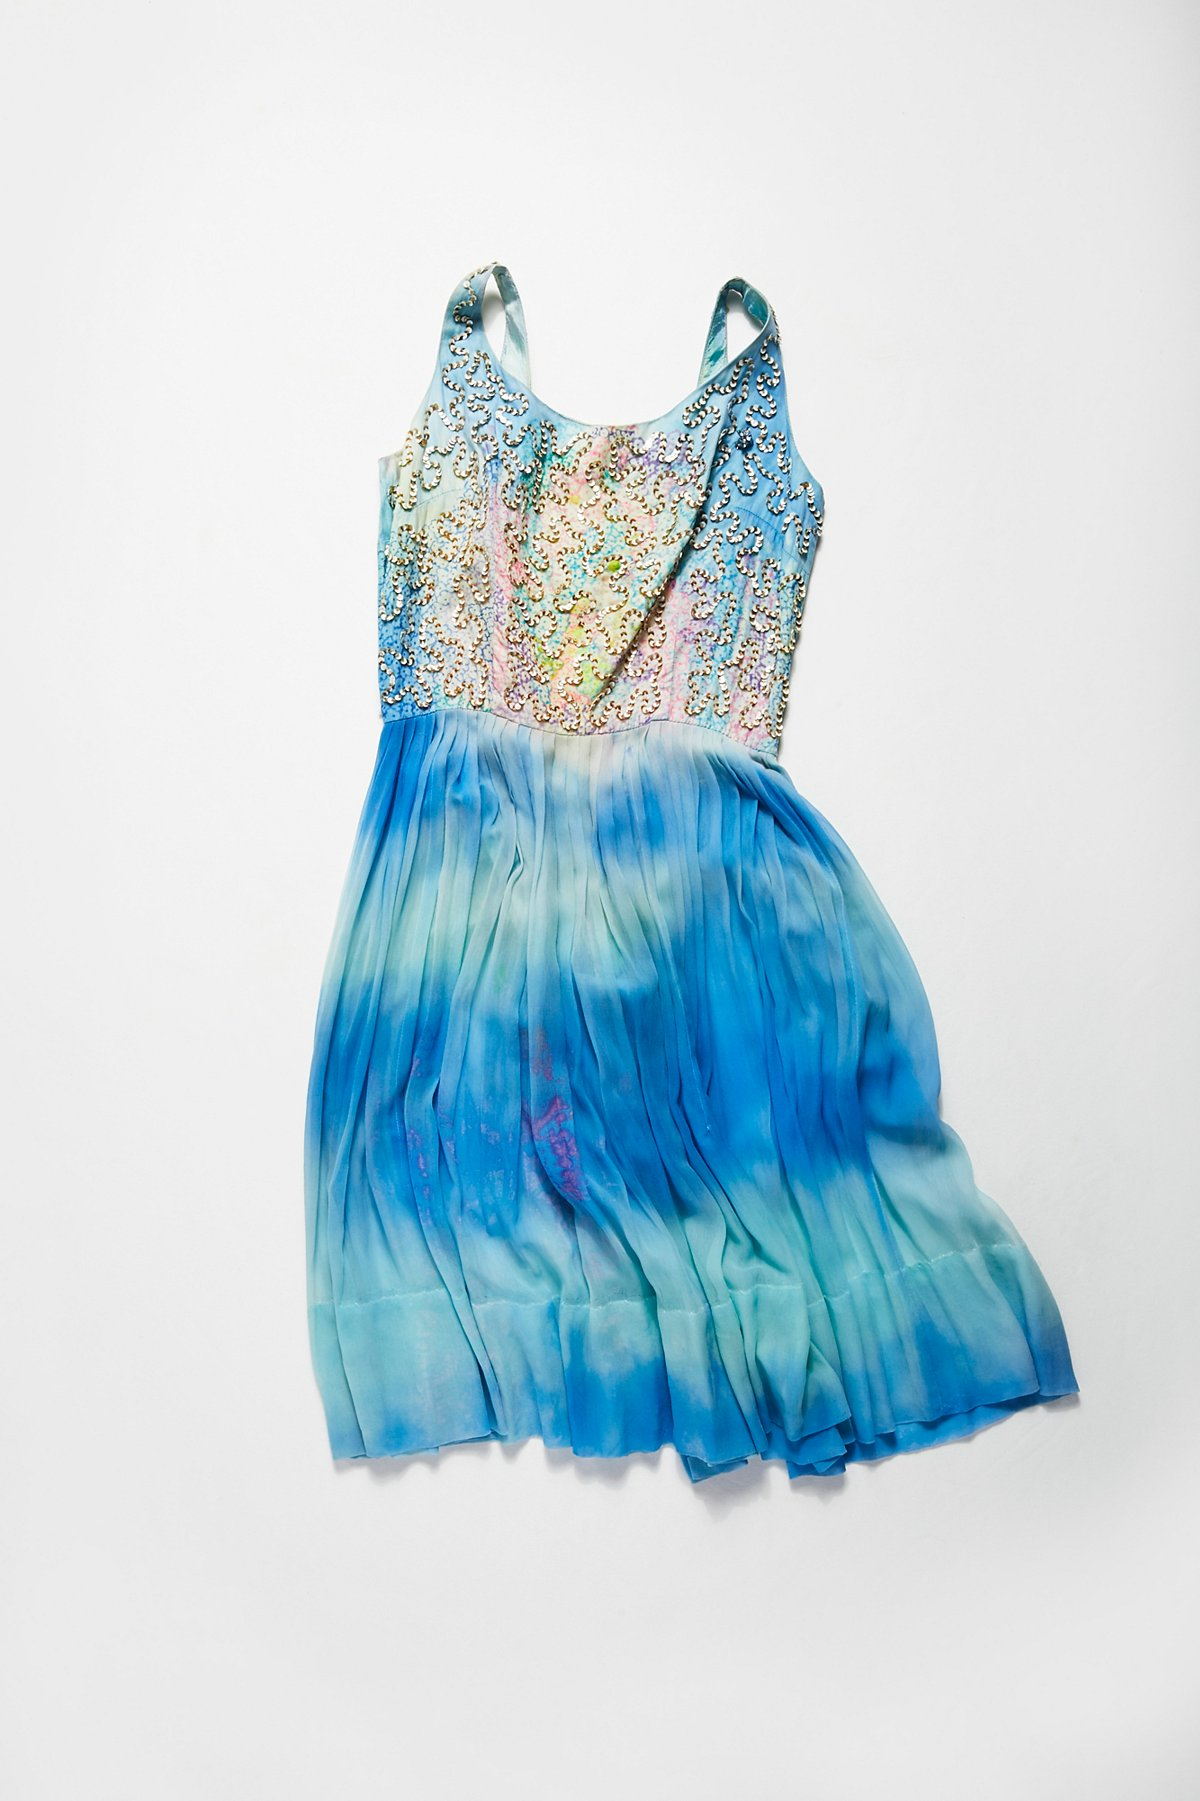 Vintage 1960s Tie Dyed Party Dress